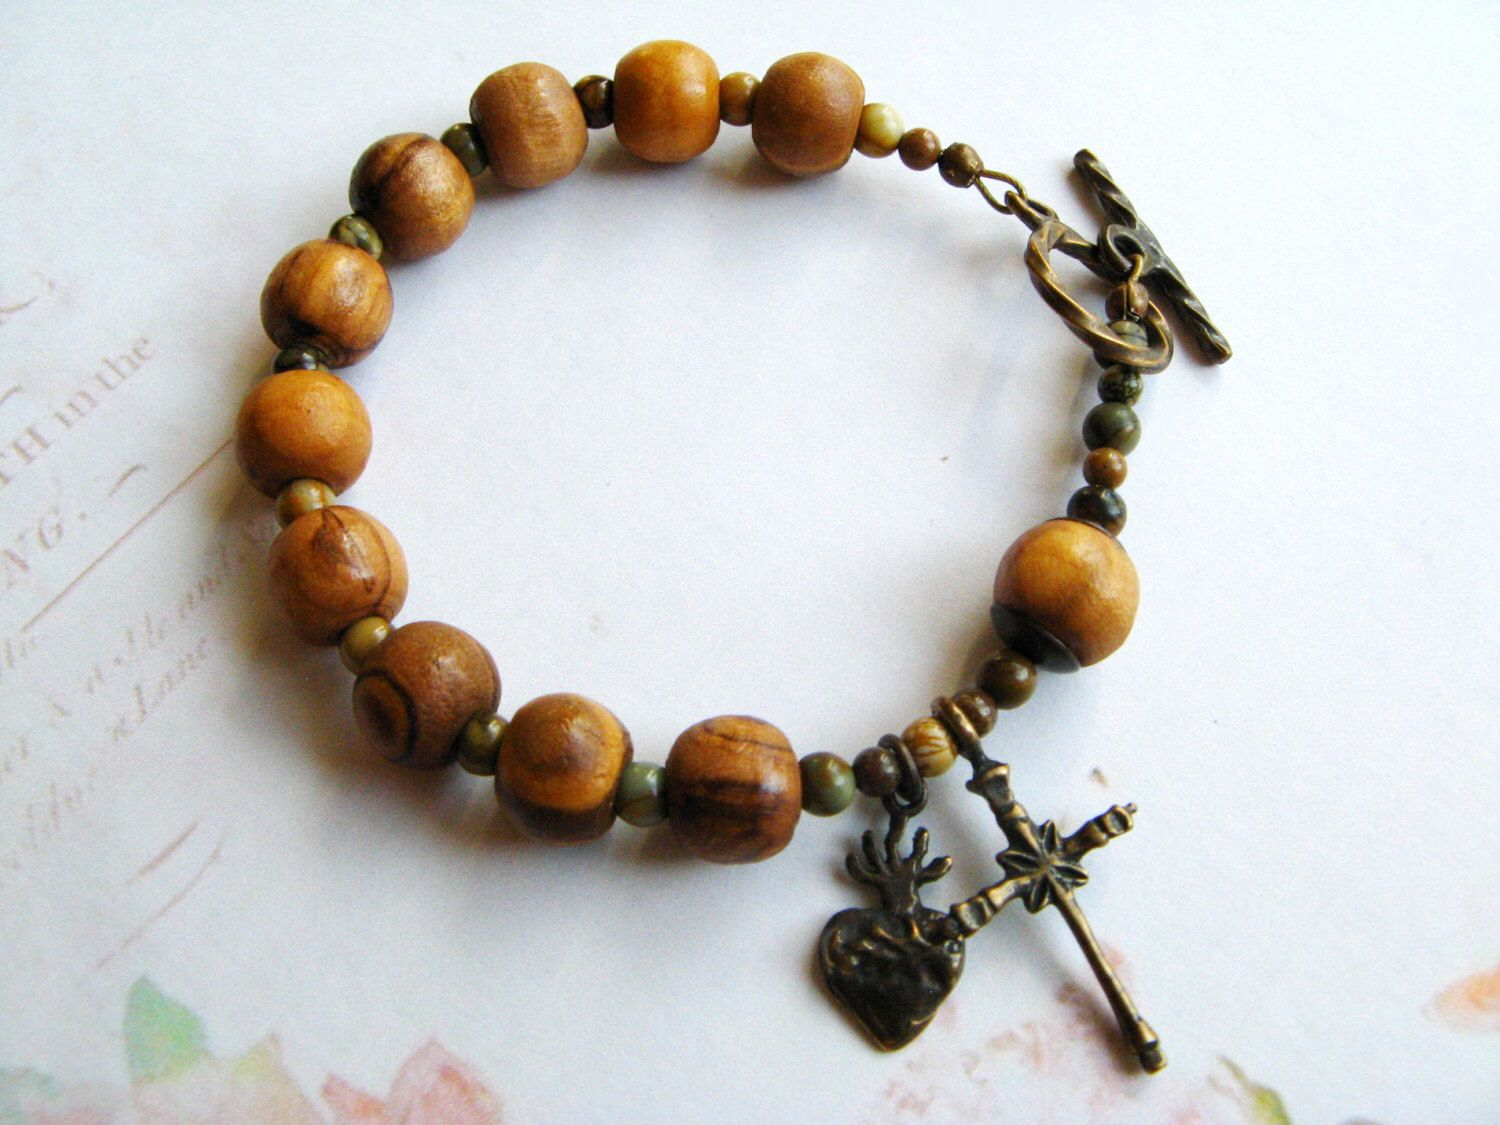 Olive Wood Catholic Rosary Bracelet - One Decade, Bronze Sacred Heart by RachelRode on Etsy https://www.etsy.com/listing/163443407/olive-wood-catholic-rosary-bracelet-one